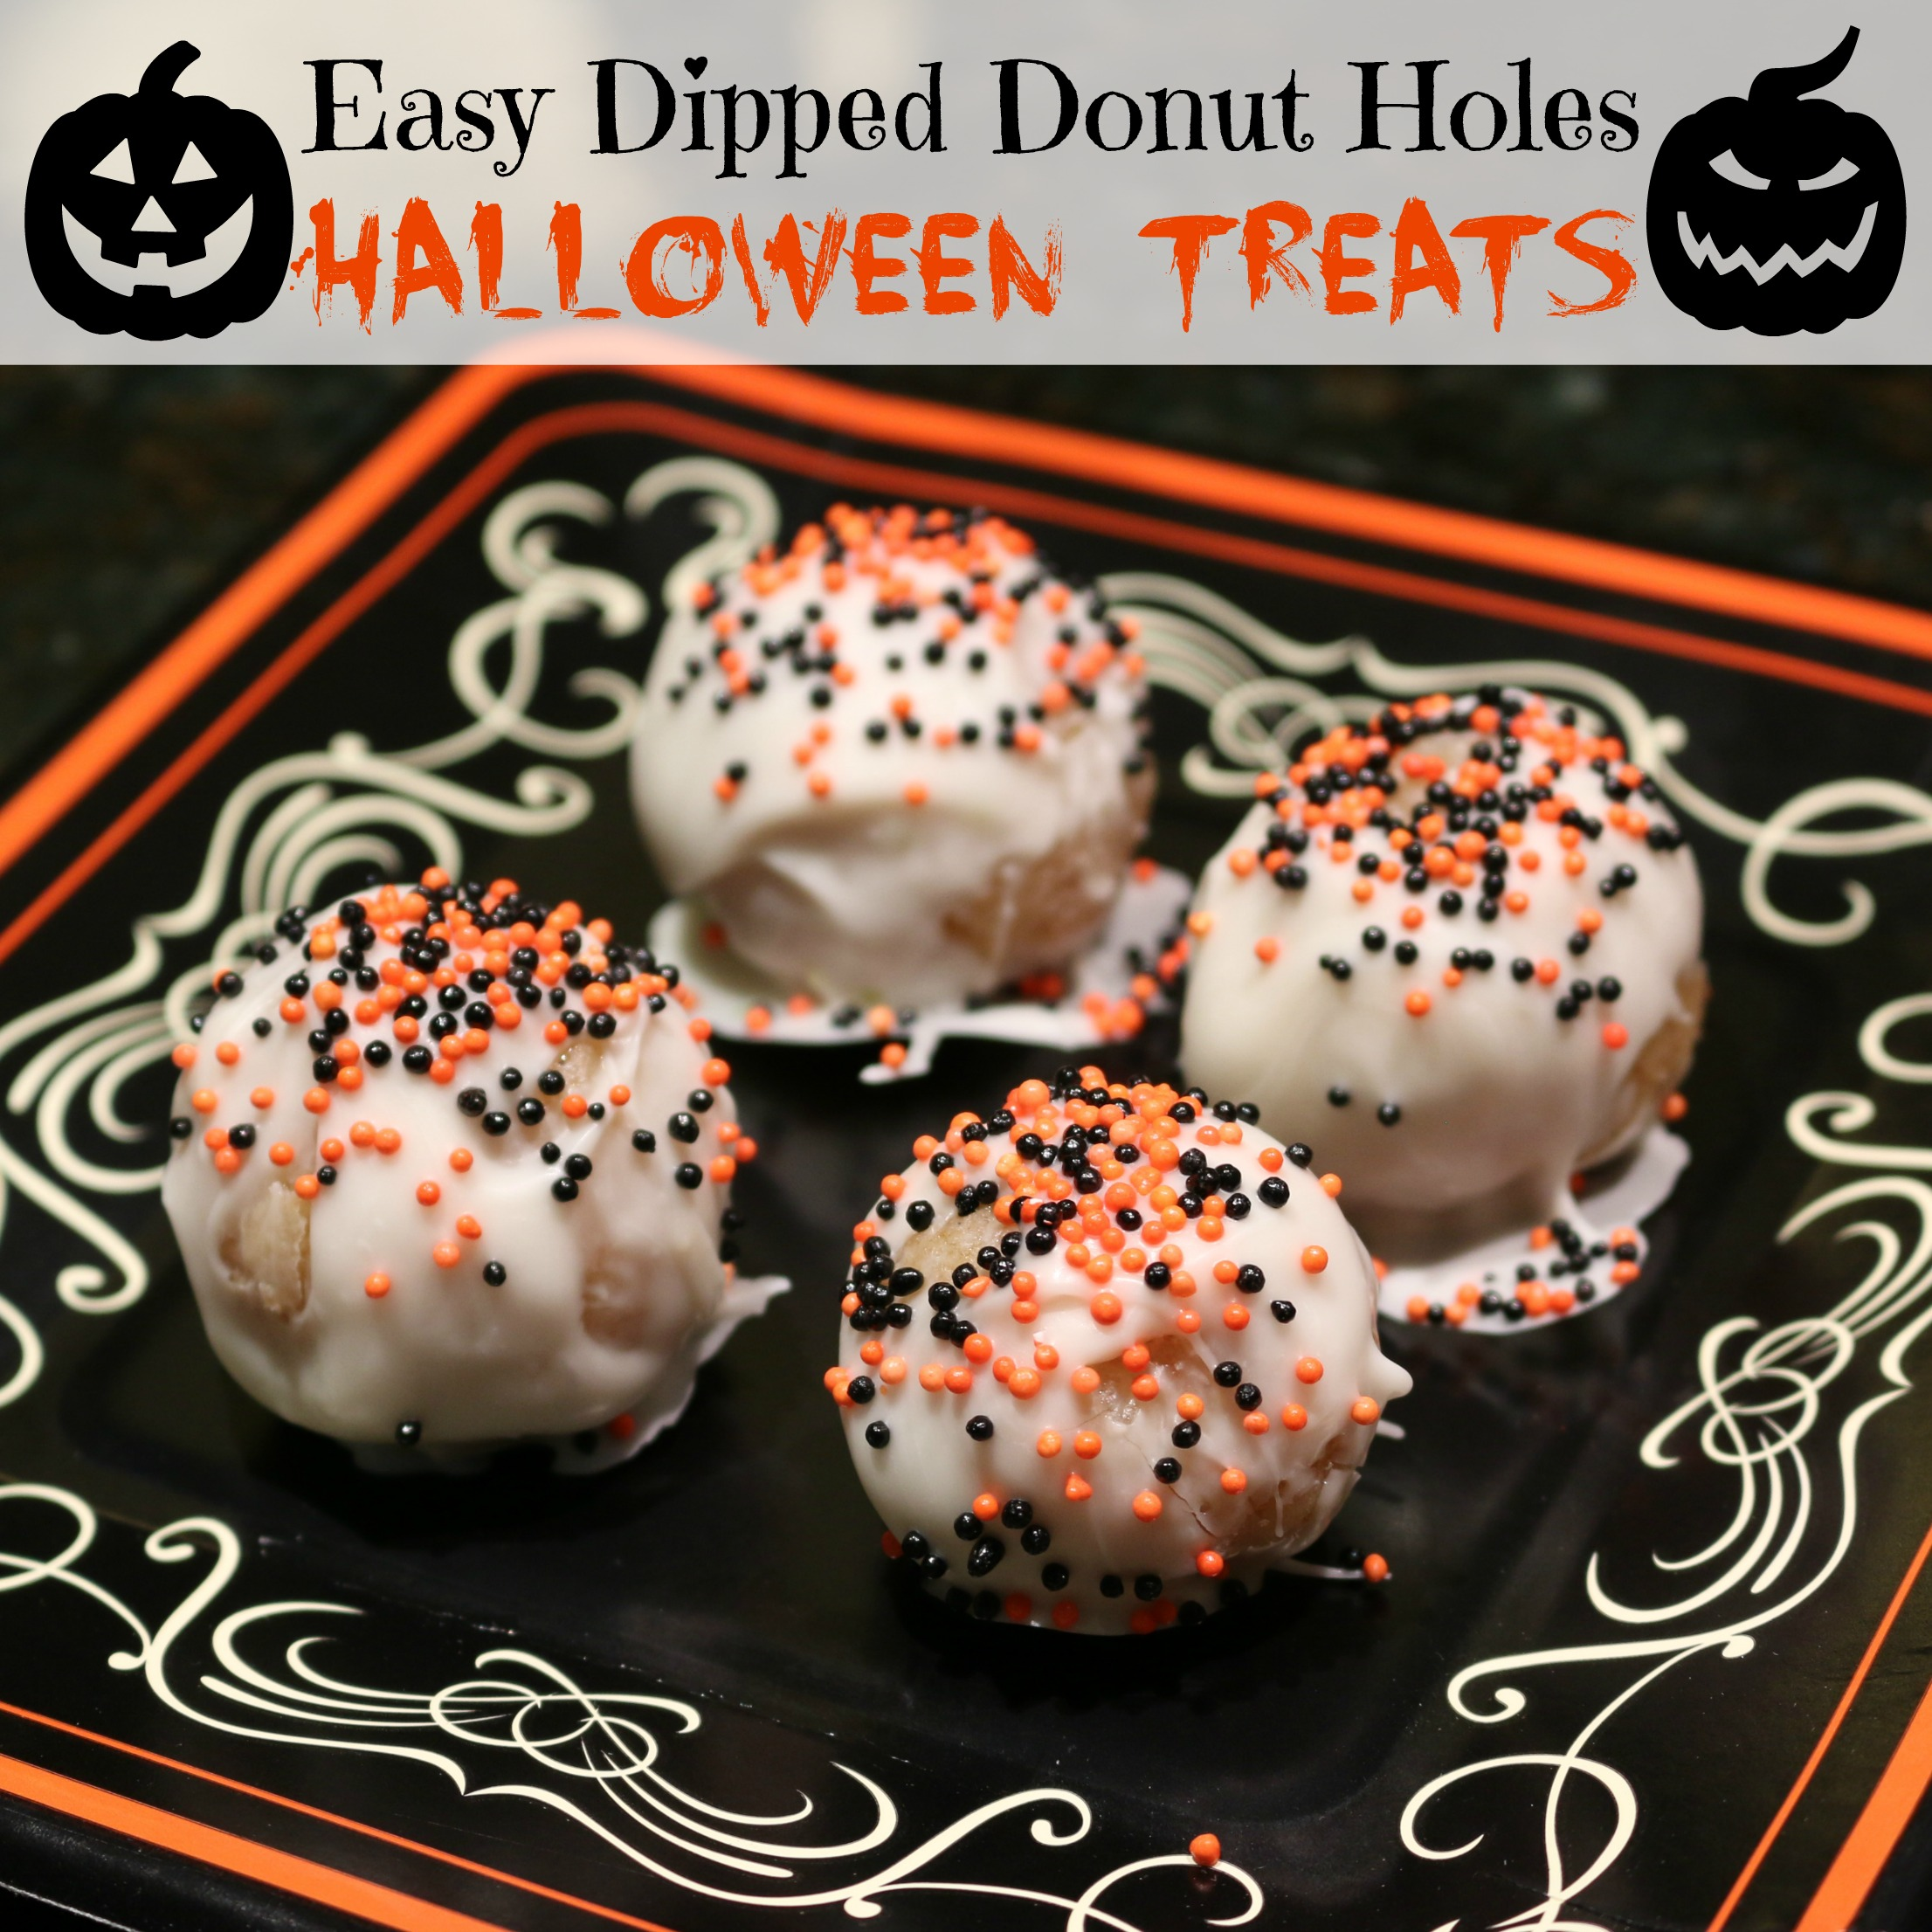 Easy Halloween Treats - Dipped Donut Holes - Simple Recipe